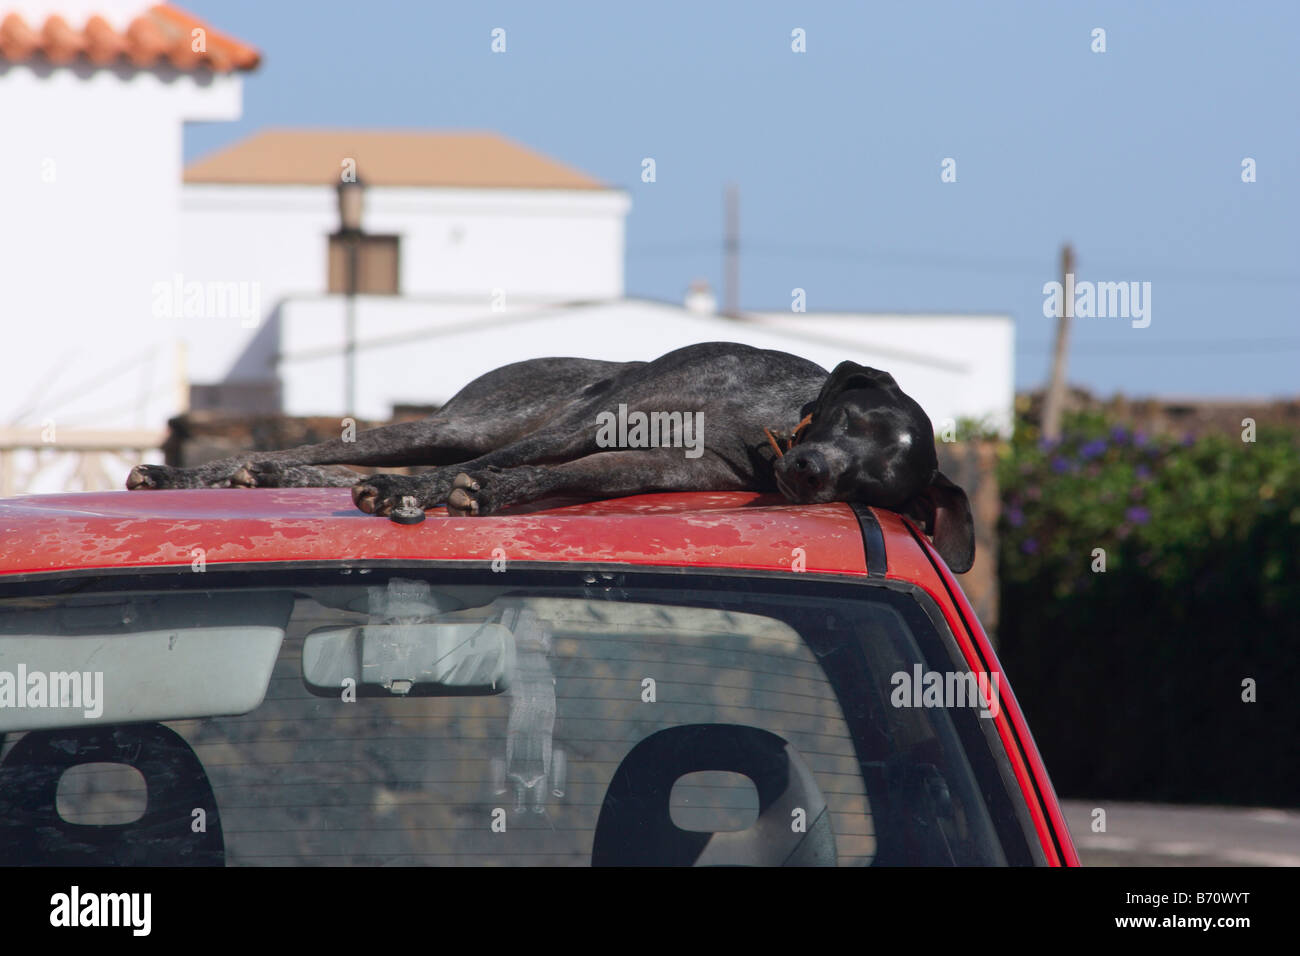 Large  dog sleeping on car roof on a hot day - Stock Image